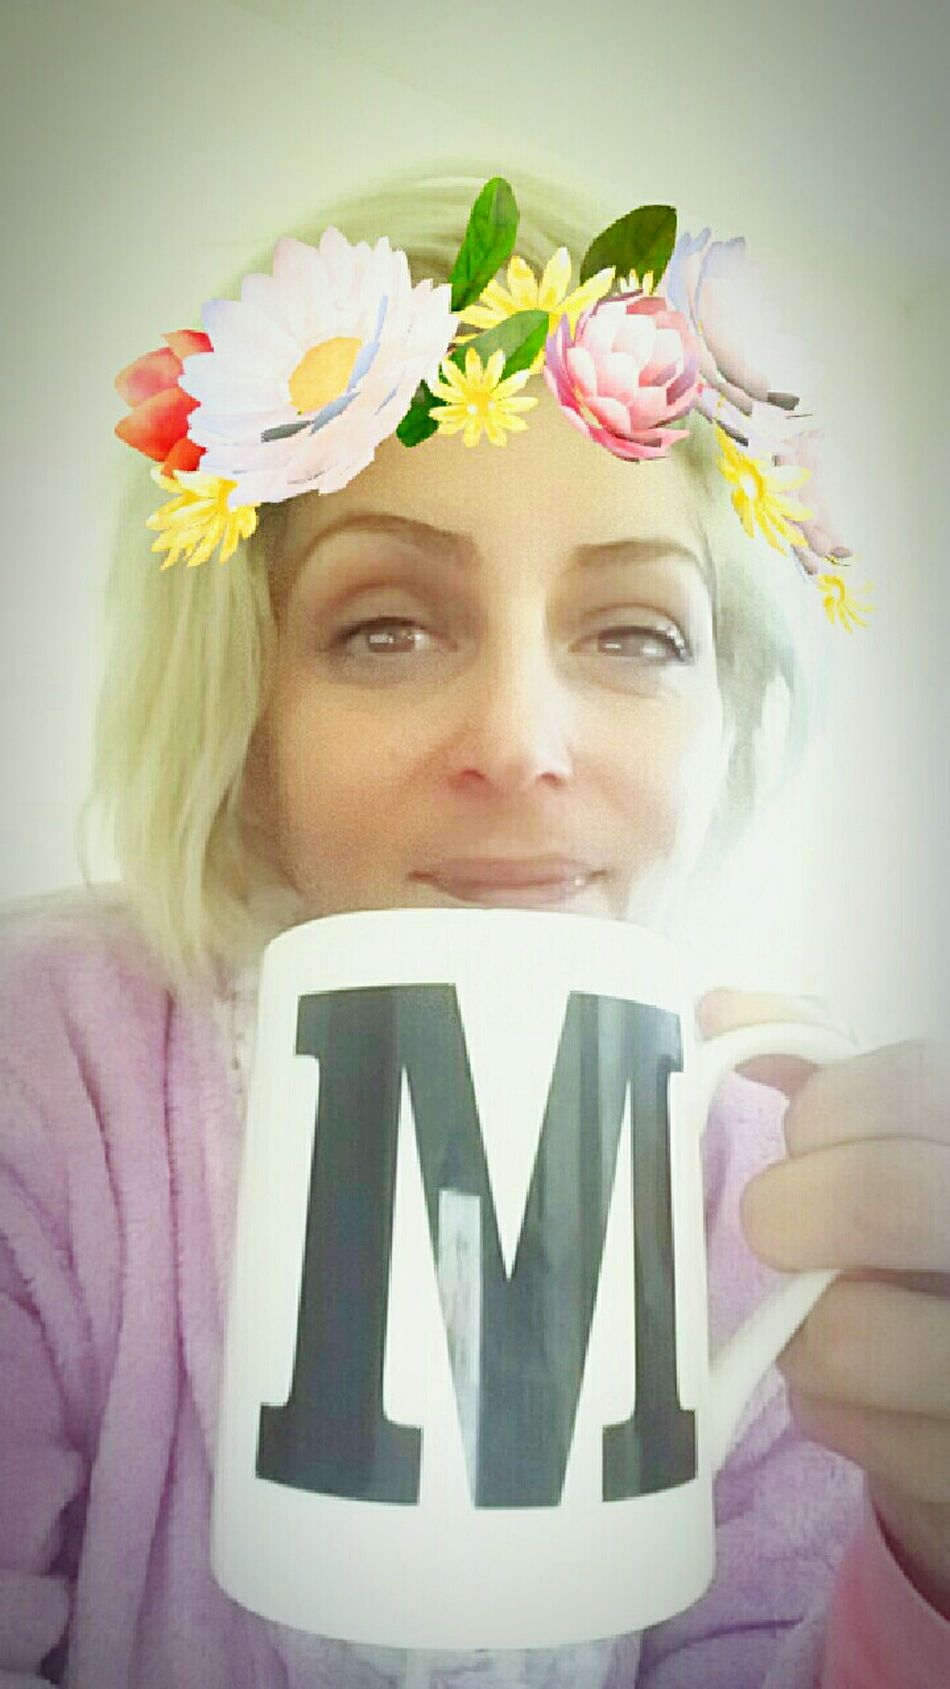 But coffee first ☕😉 Selfies Coffee M Mug Letter Smile Smiling Butfirstletmetakeaselfie  Butfirstcoffee Snapchat Filter Pijamas Morning Coffee Colours Blonde Bobhaircut Bobhair Bobhairstyle Haircut Hairstyle Nomakeup Nomakeupselfie NoMakeUpOn Coffee At Home Coffeelover